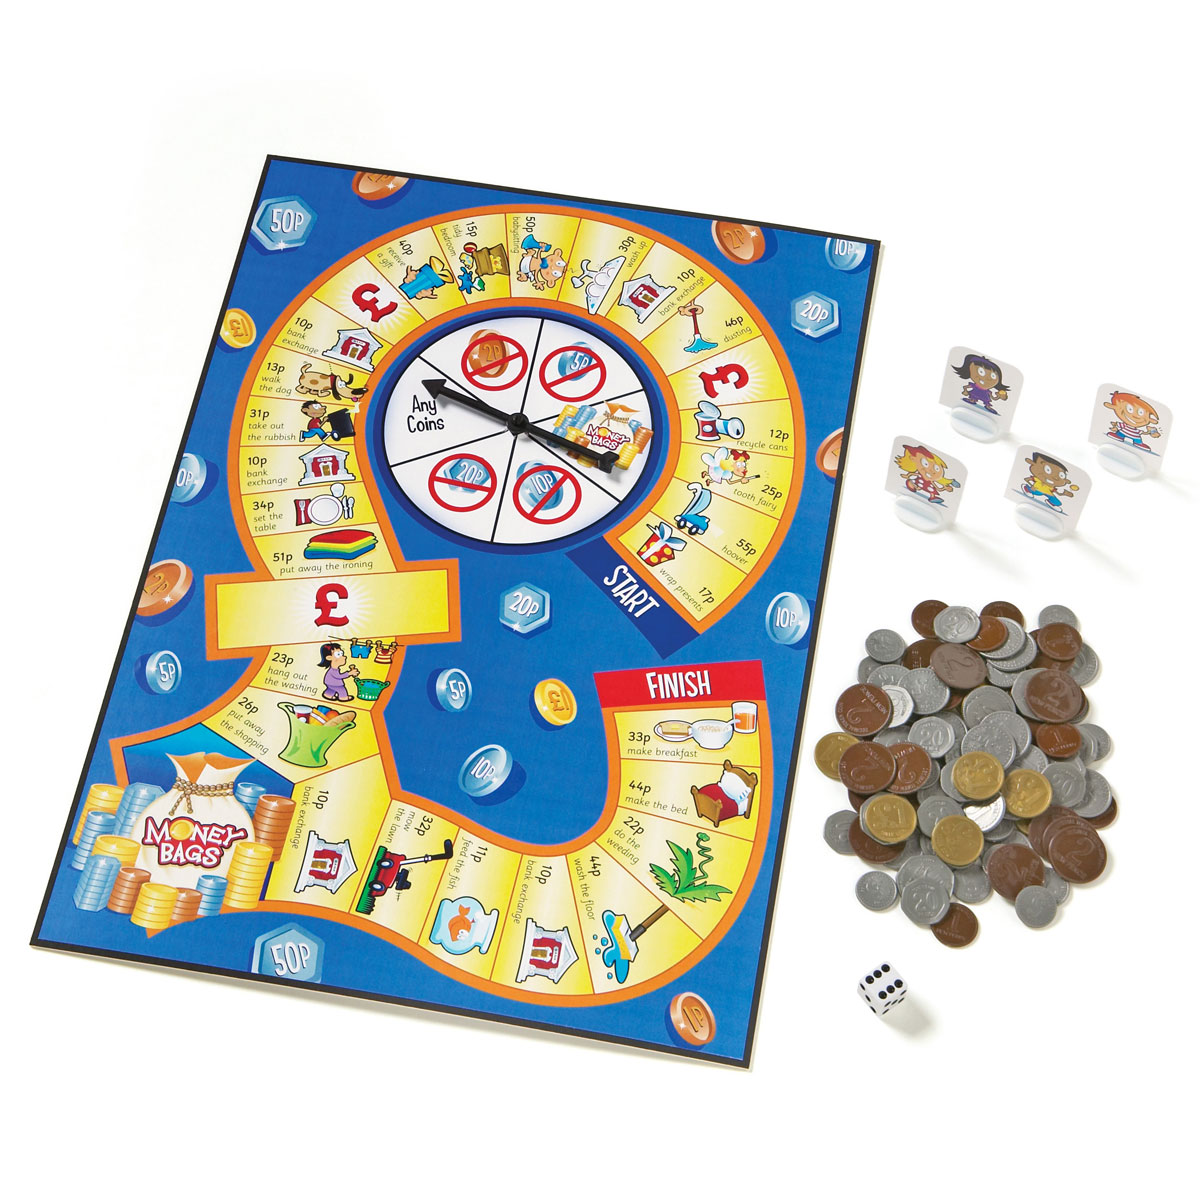 Buy School Money Bags Coin Value Game